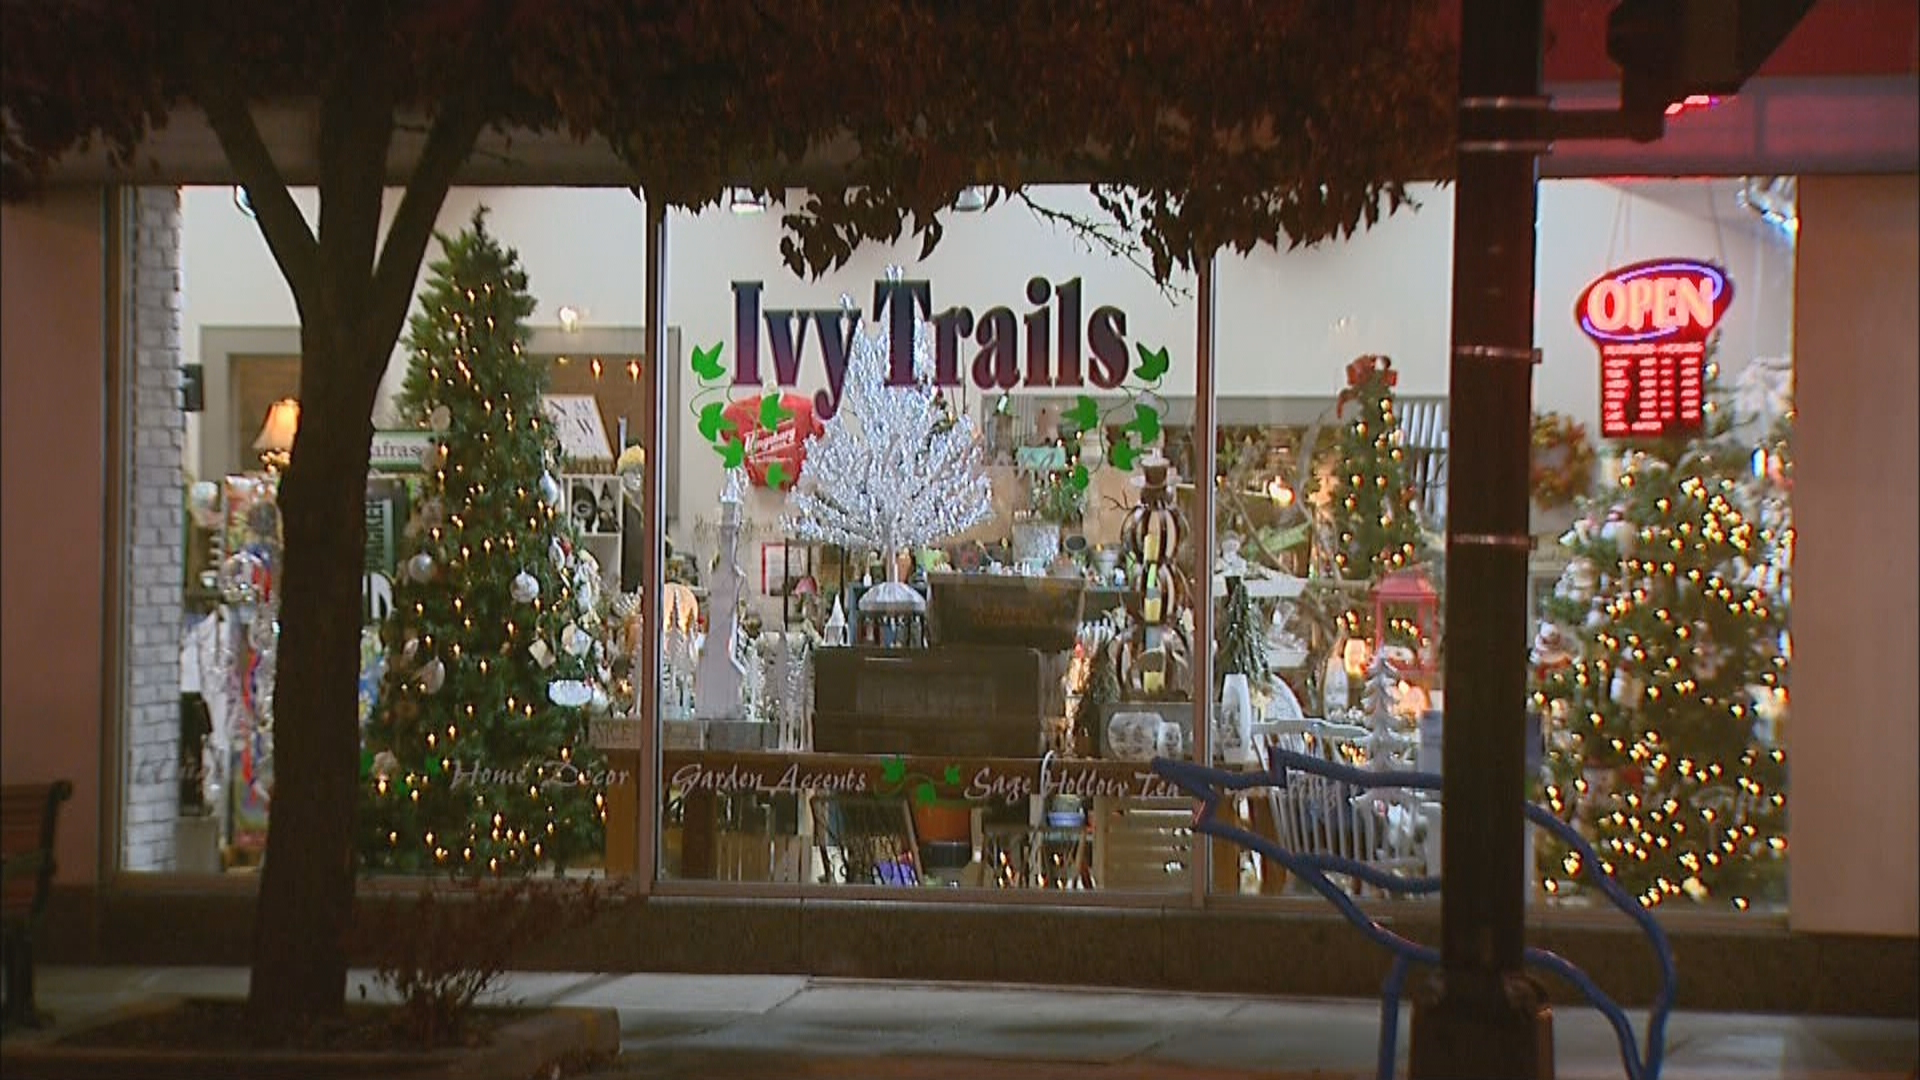 More than 30 downtown Manitowoc storefront windows display vintage aluminum Christmas trees for the Evergleams on Eighth, November 17, 2017. (WLUK)